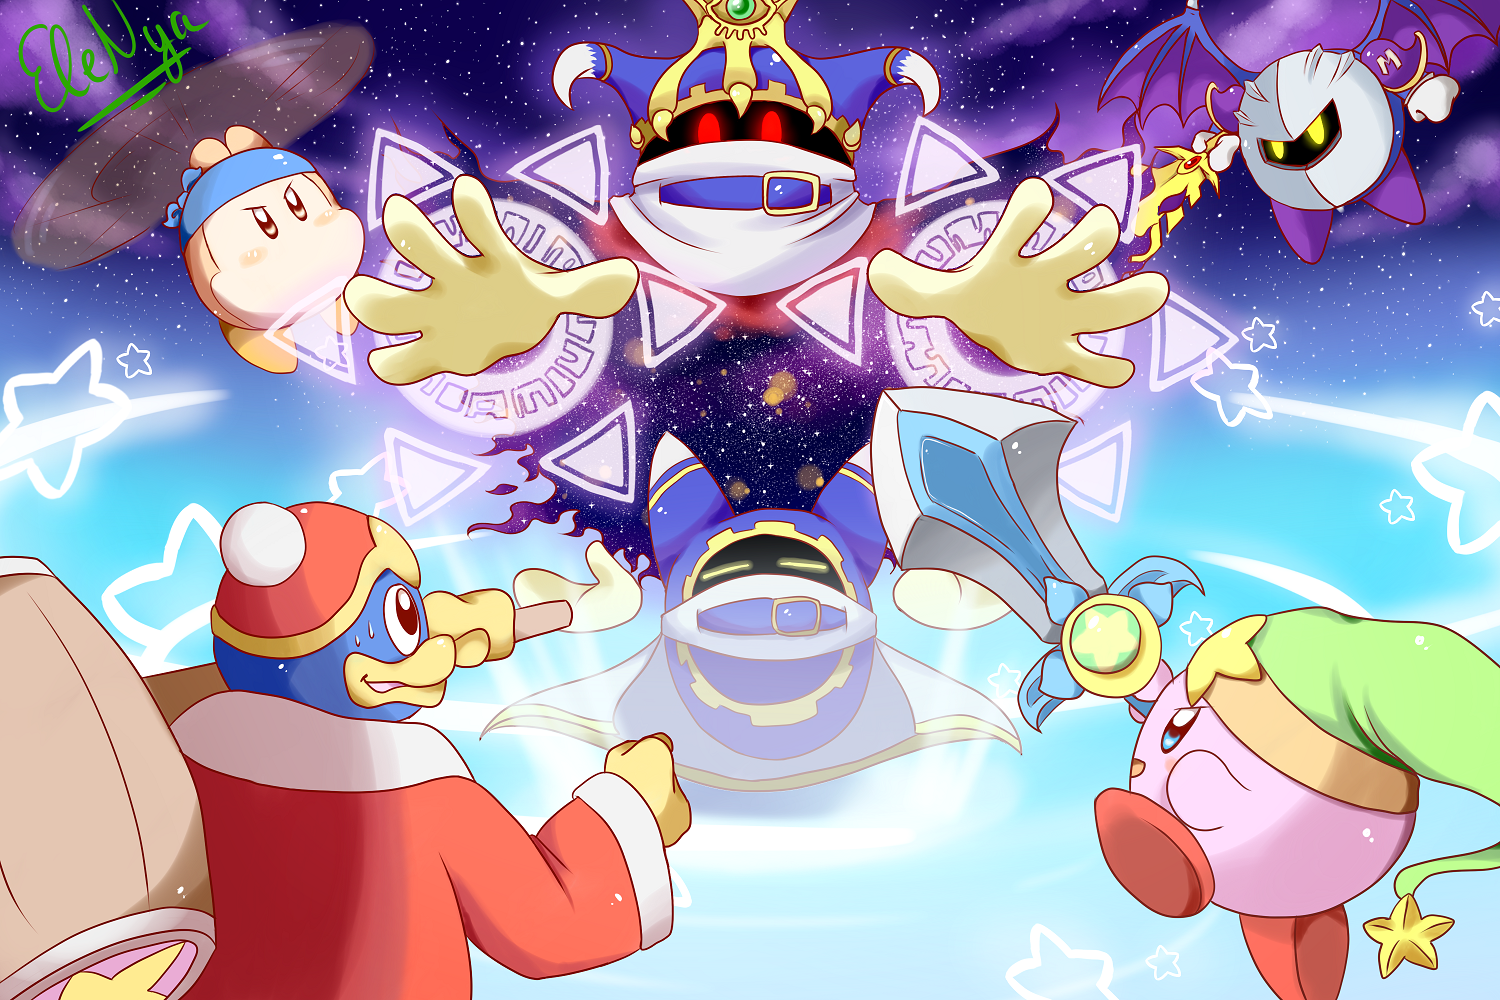 Nya Kirby Wallpaper: Kirby And Friends Vs Magolor By Ele-nya On DeviantArt